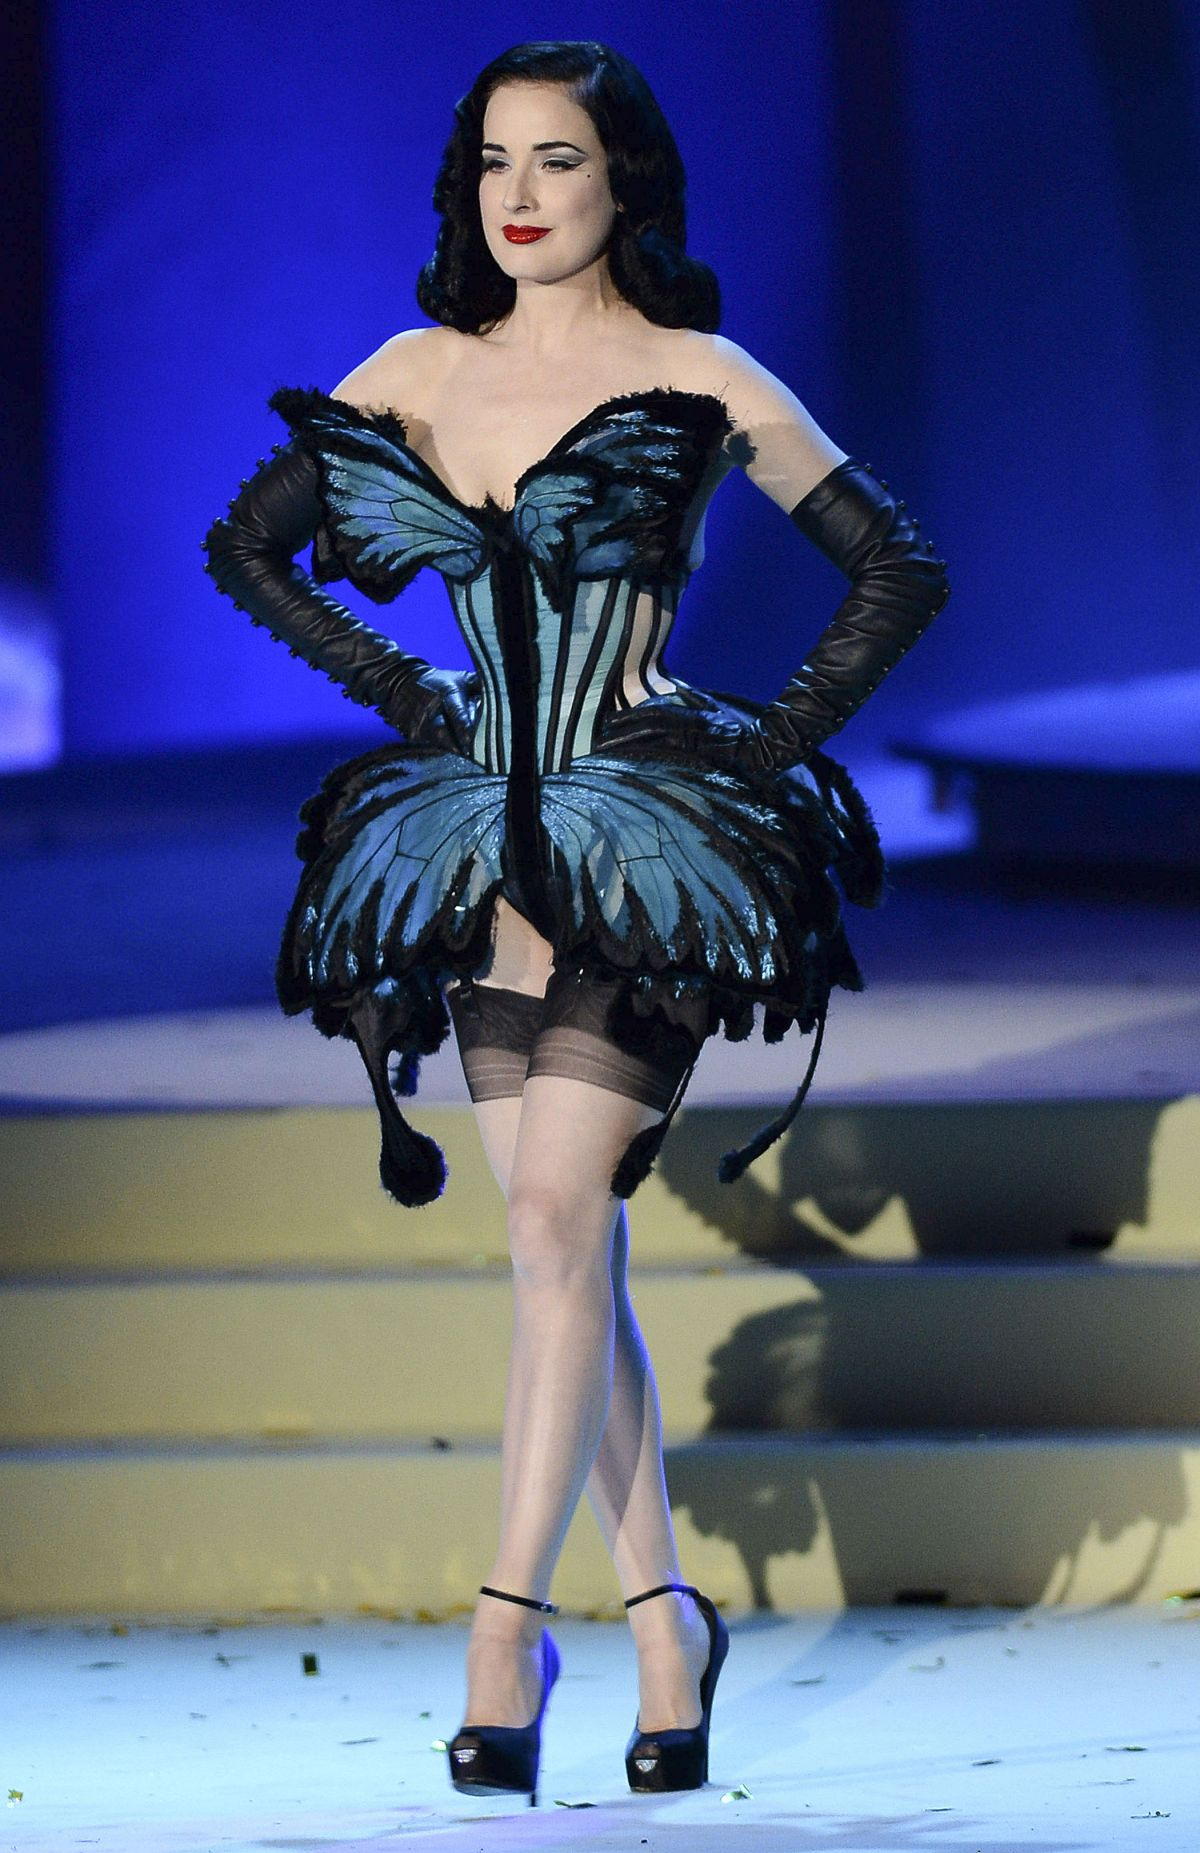 DITA VON TEESE at Llife Ball 2015 in Vienna